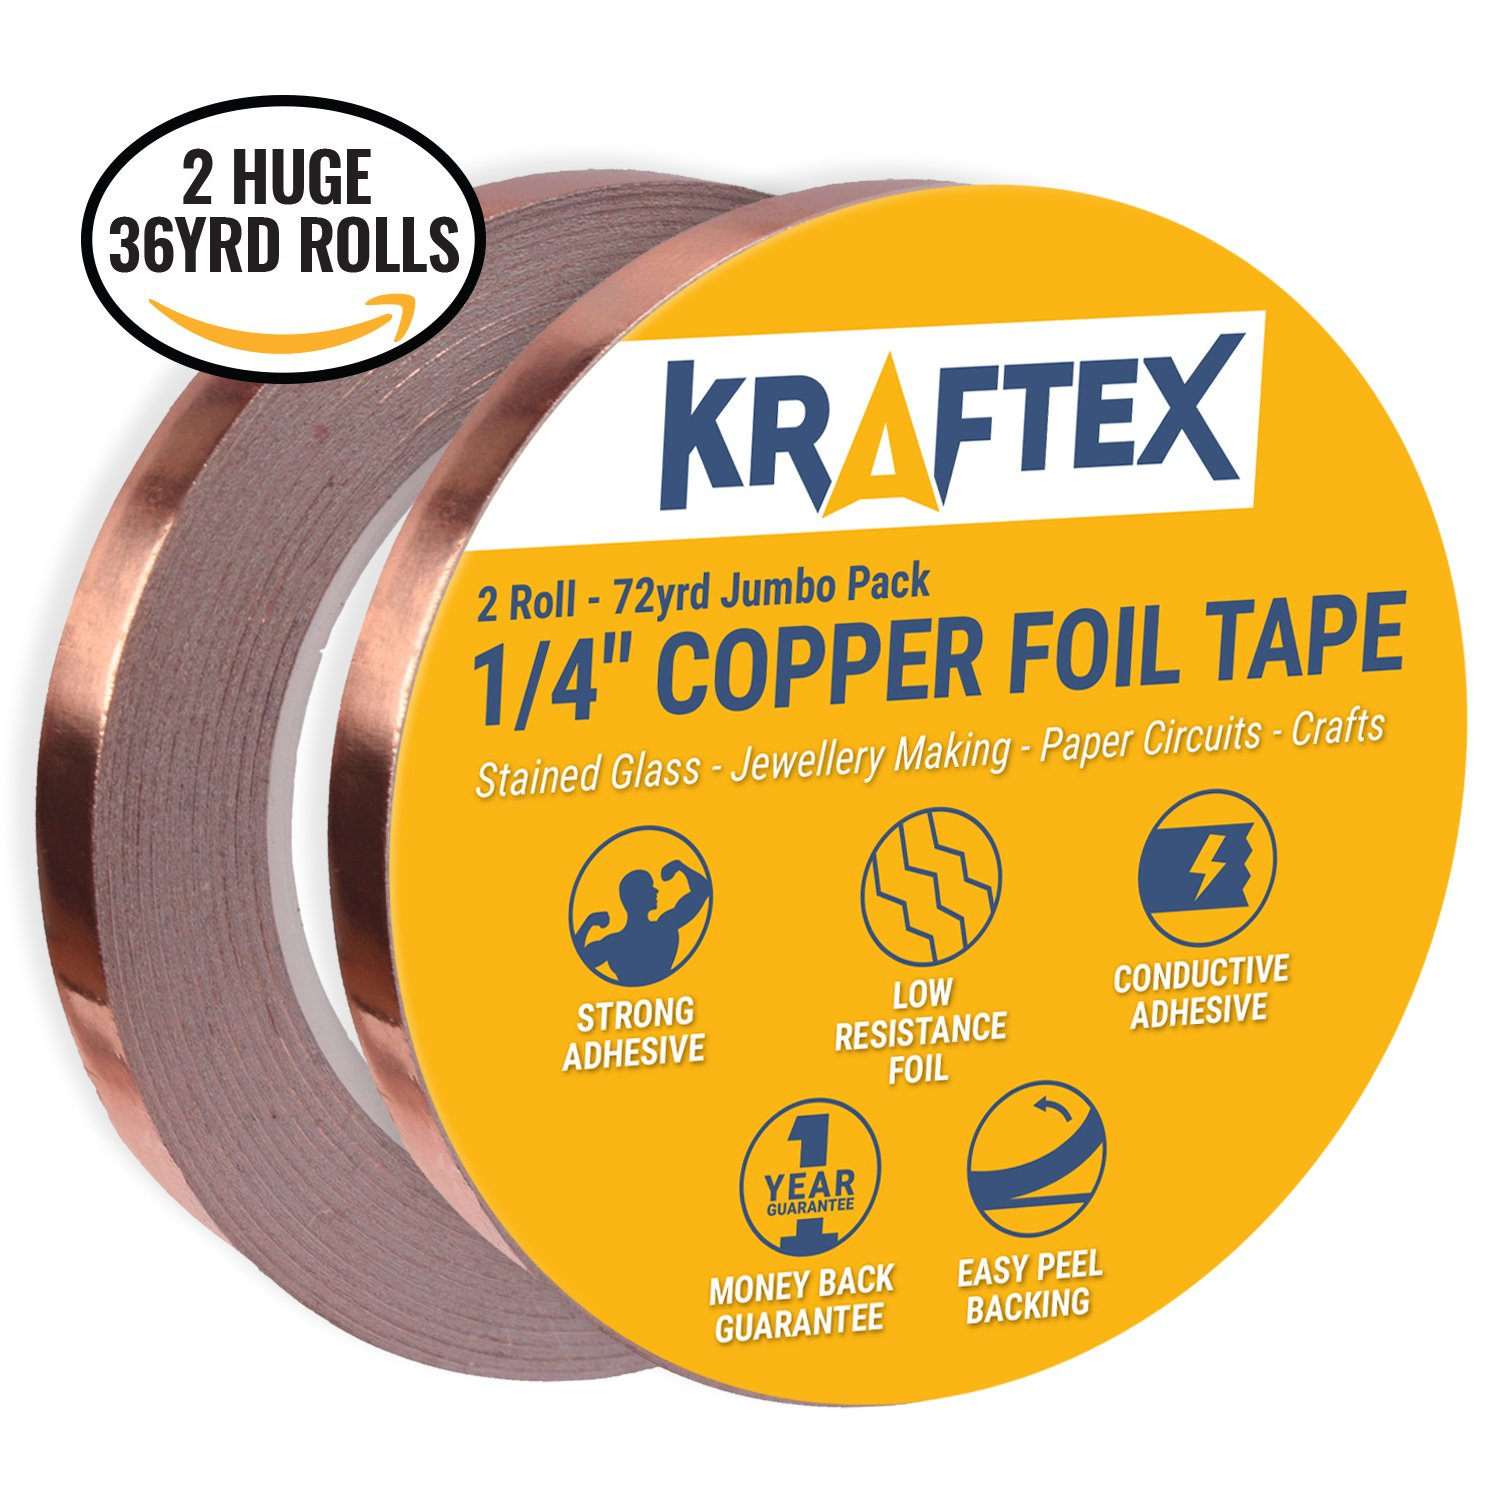 Copper Foil Tape 2 Huge Rolls 1 4inch X 36yd Each 72 Yard Pack With Conductive Adhesive Stained Glass Soldering Electrical Repair Grounding